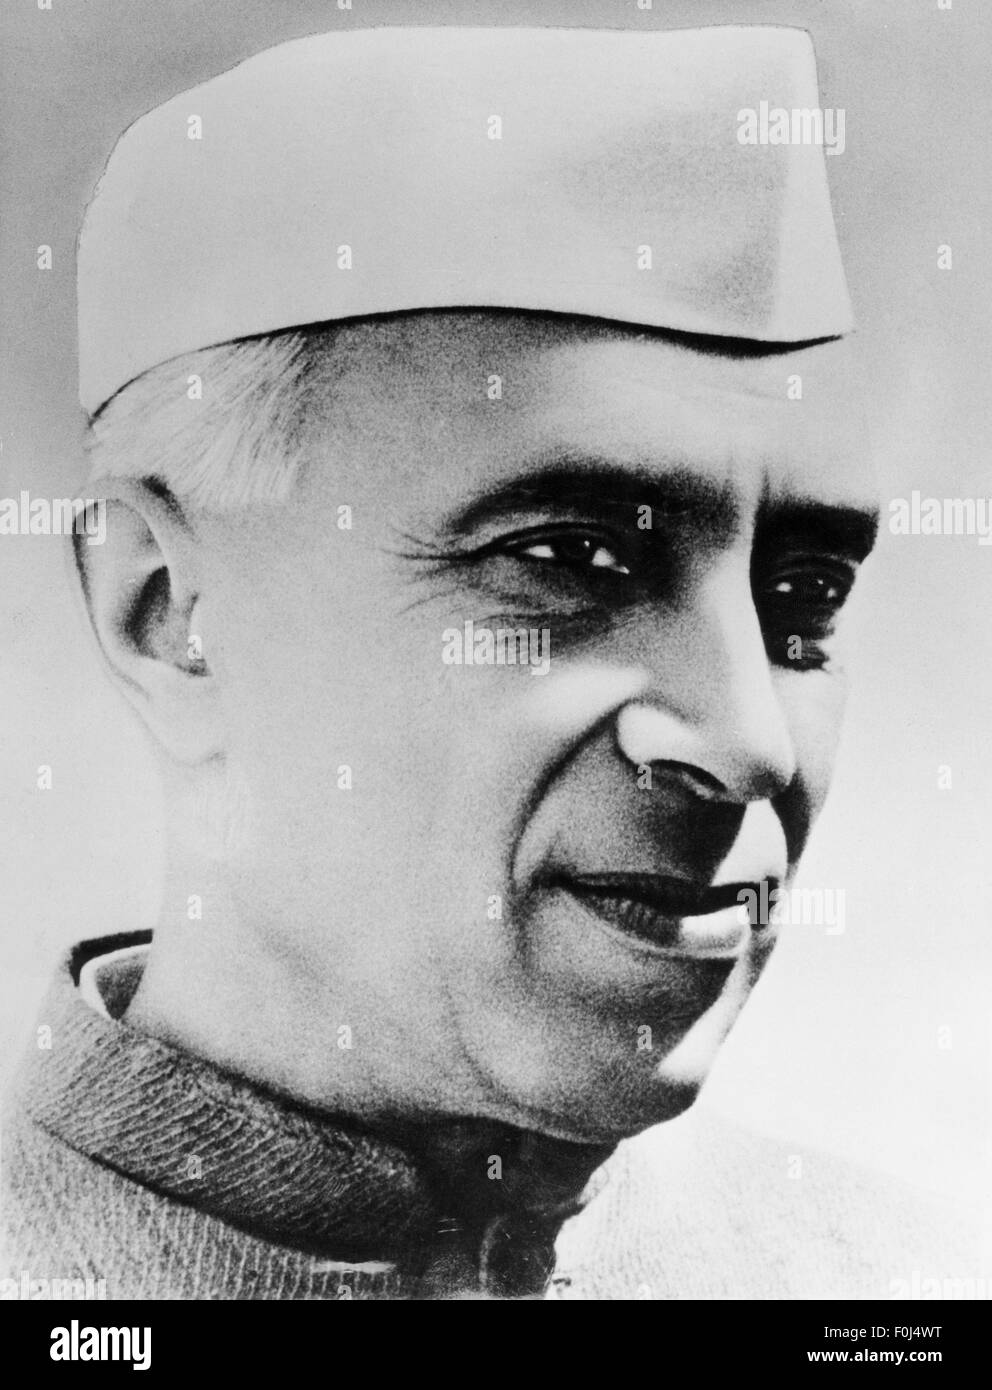 Nehru, Jawaharlal 'Pandit', 14.11.1889 - 27.5.1964, Indian politician, portrait, 1950s, Additional-Rights - Stock Image